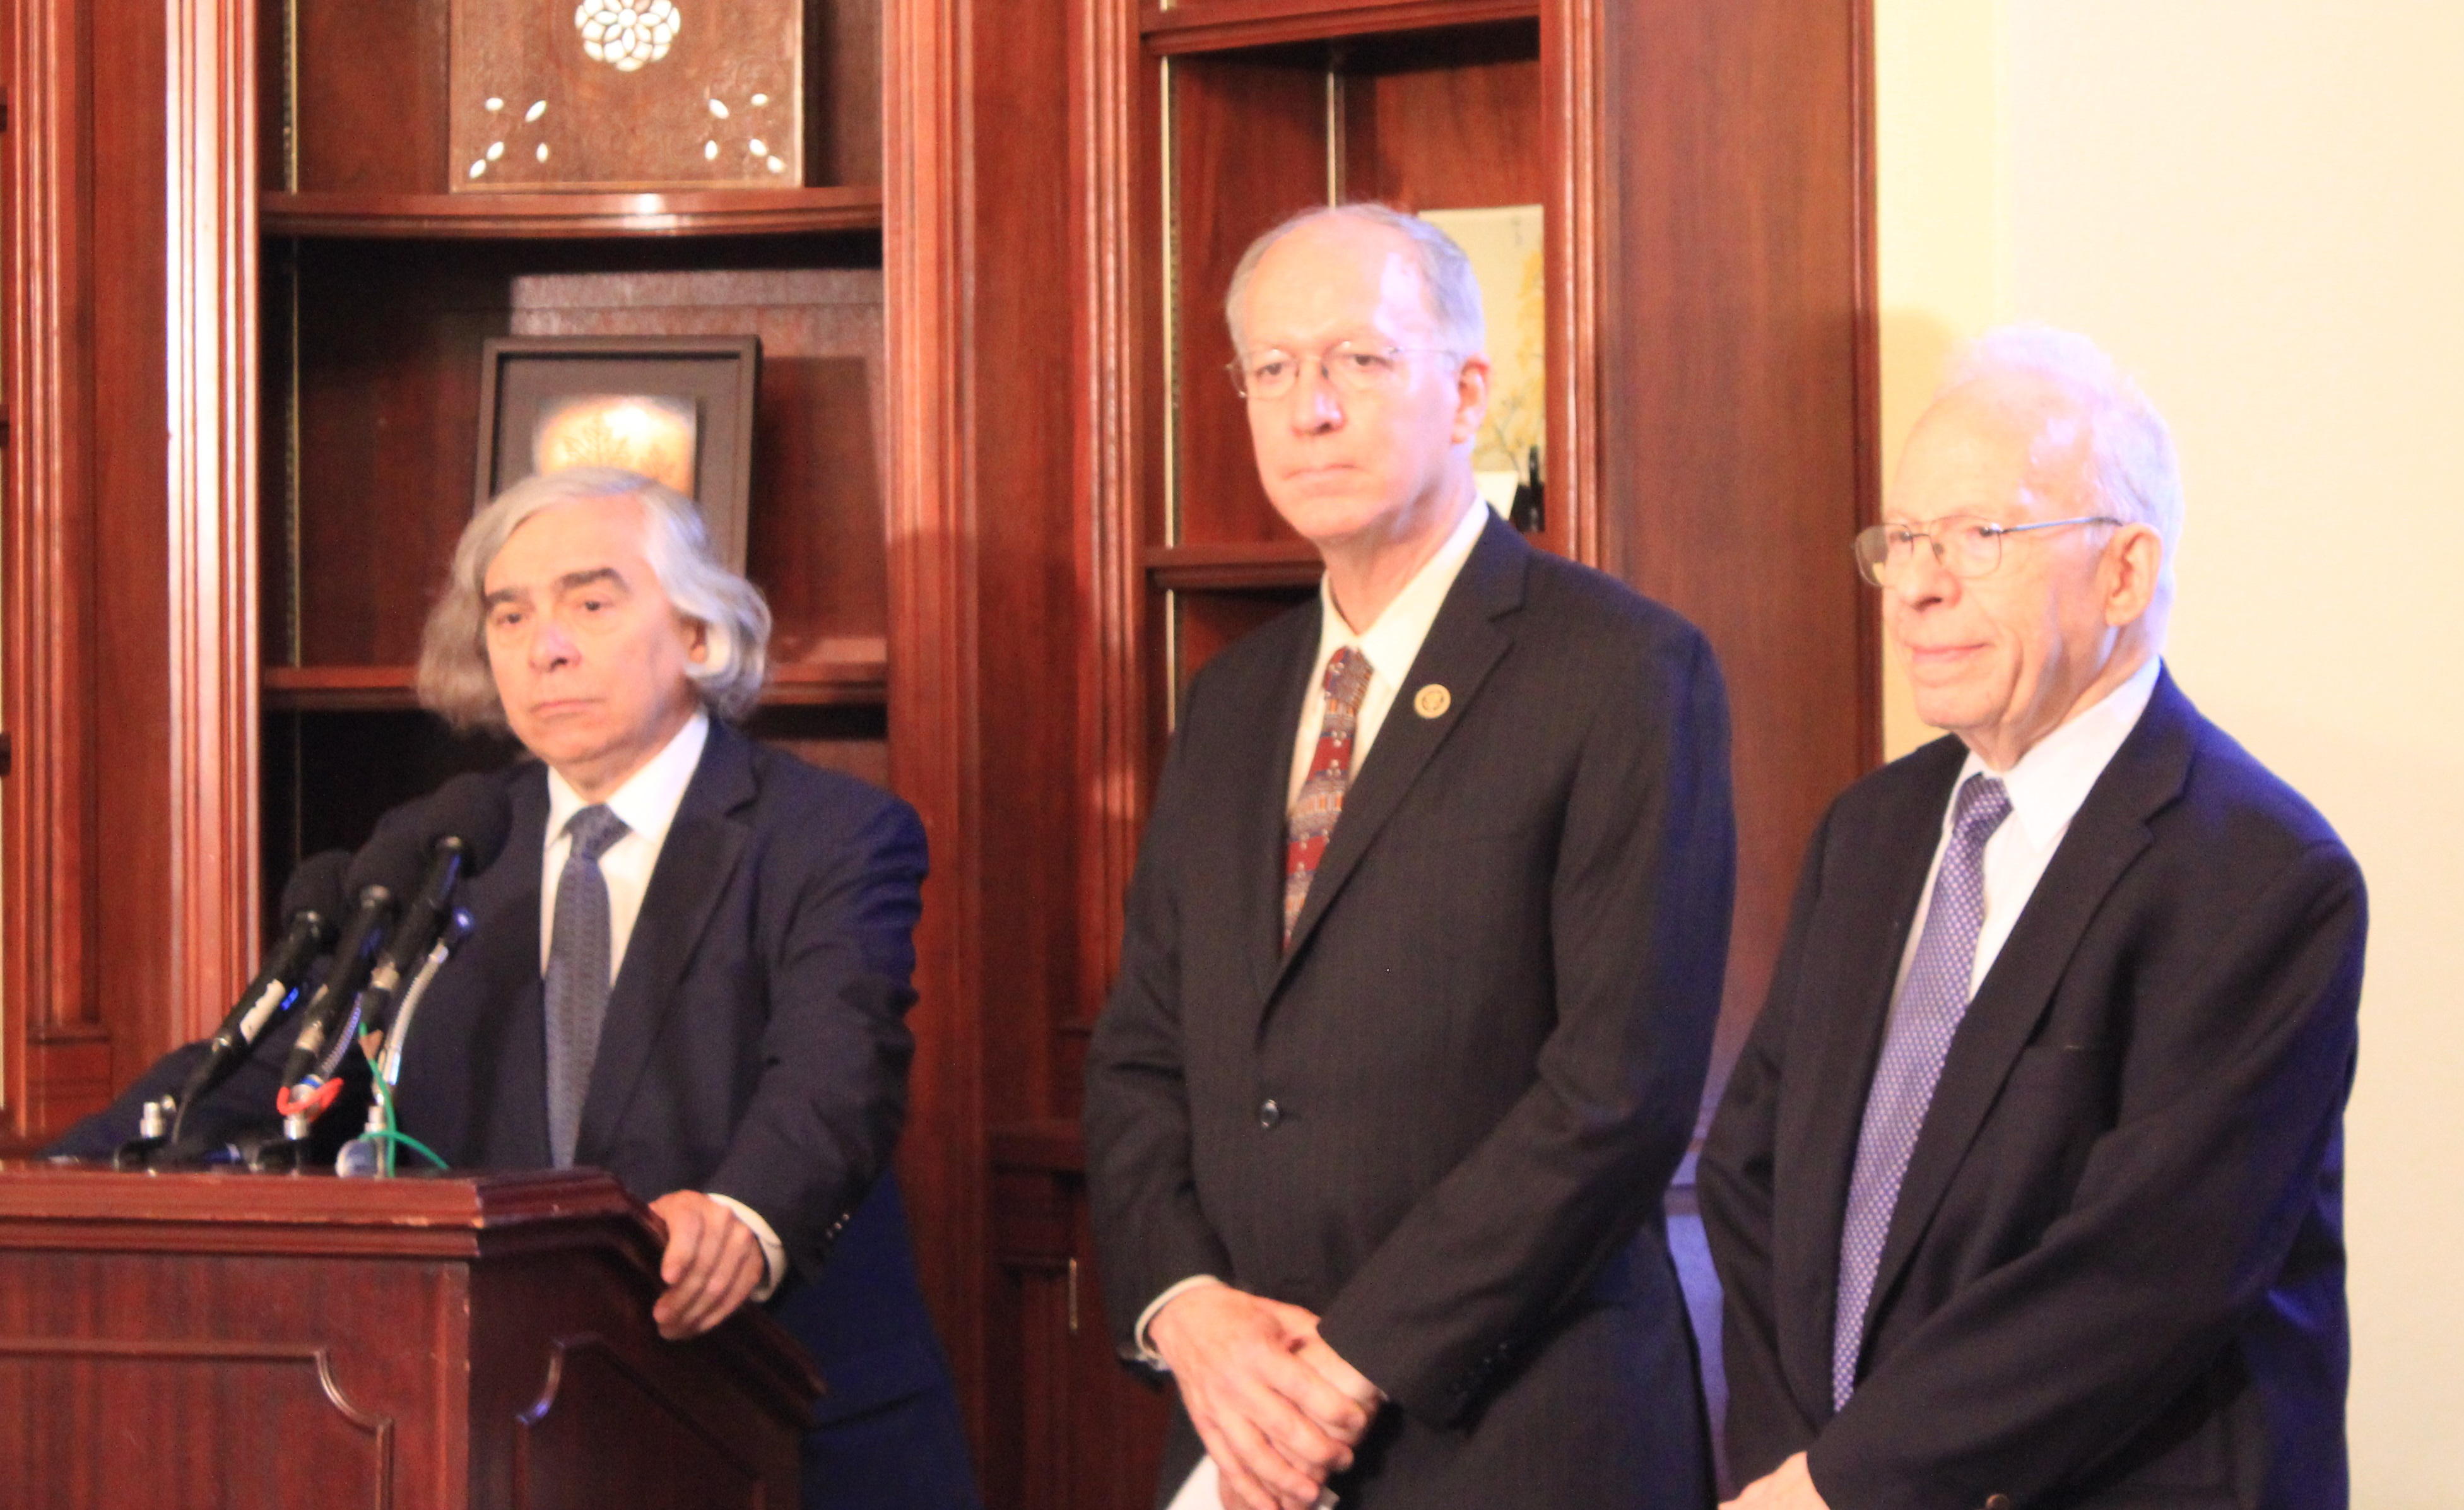 Foster Announces Support For Iran Nuclear Agreement Congressman